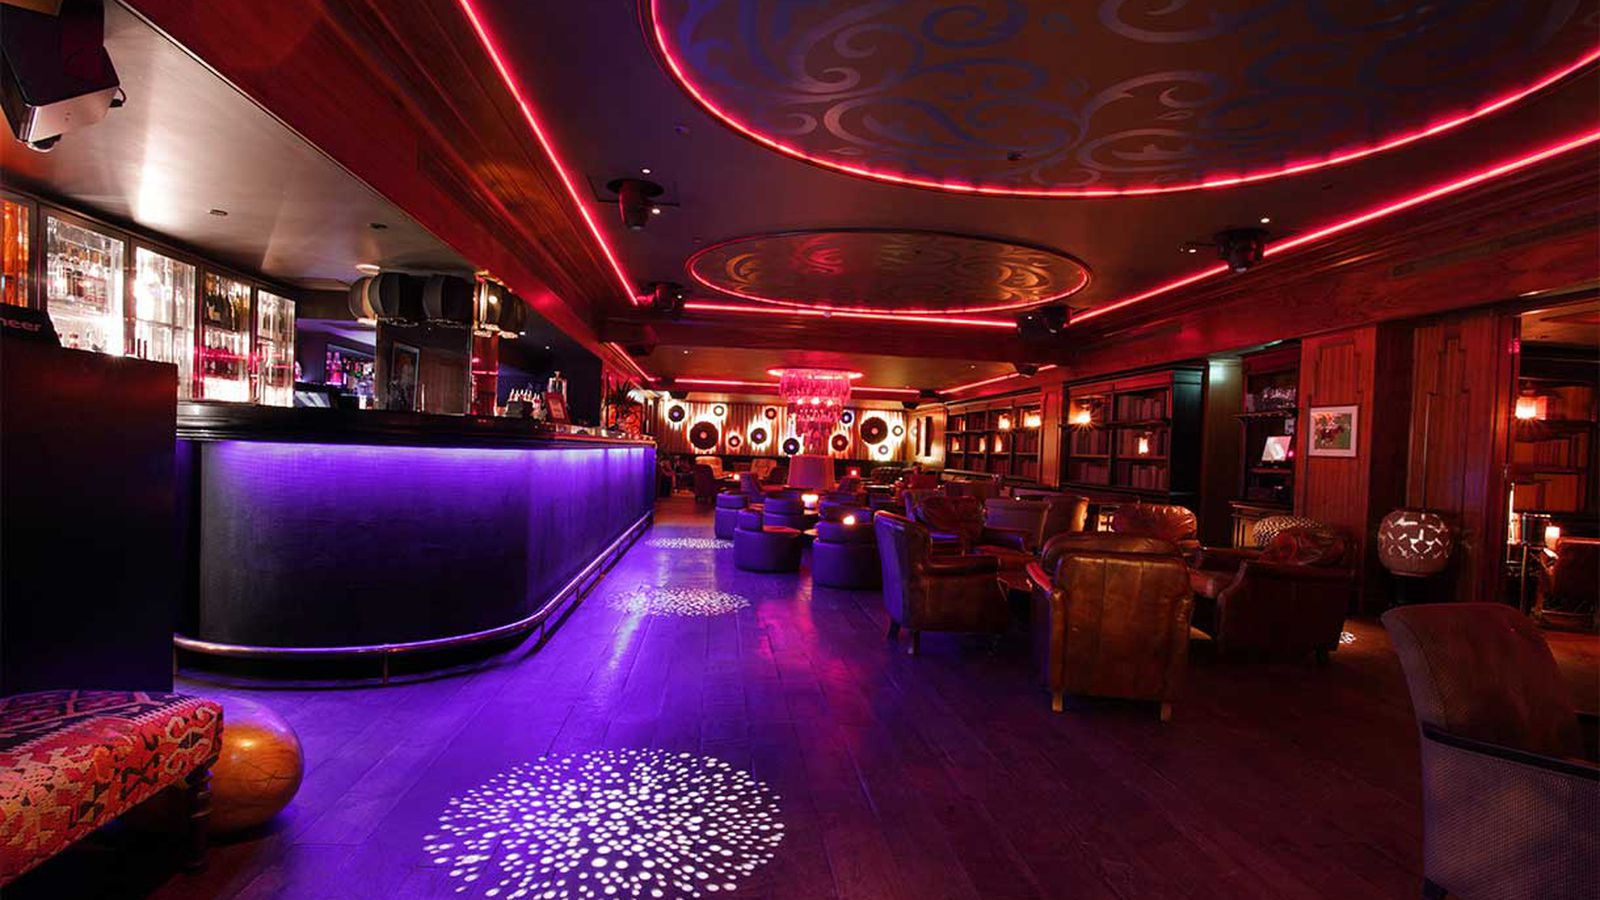 International restaurant novikov bar grill to open first u s outpost in miami eater miami - Restaurant bar and grill ...